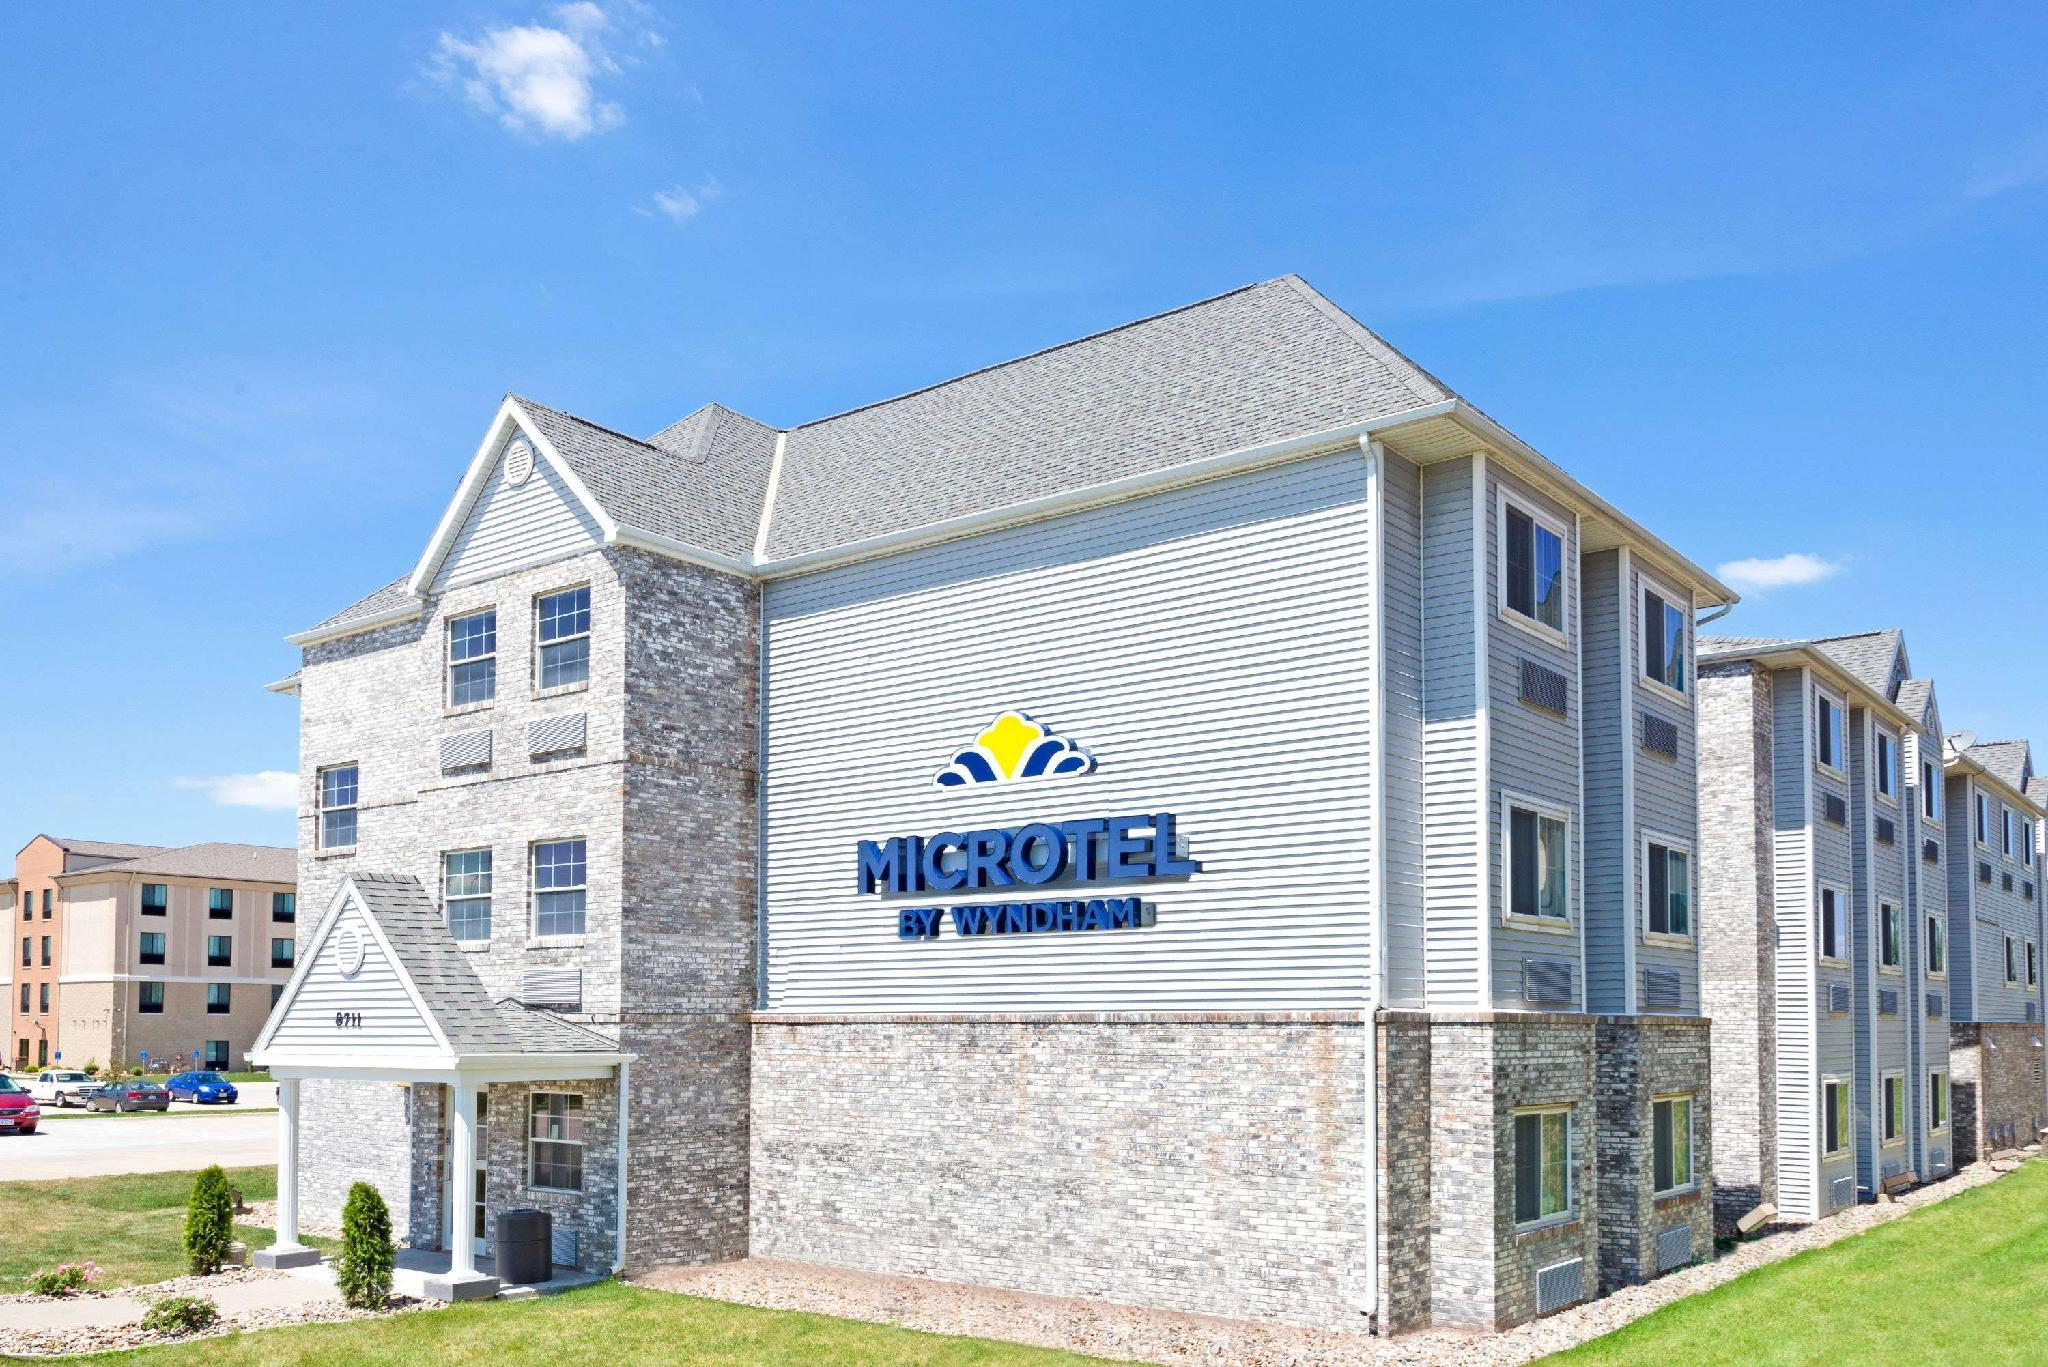 Microtel Inn And Suites By Wyndham Urbandale Des Moines